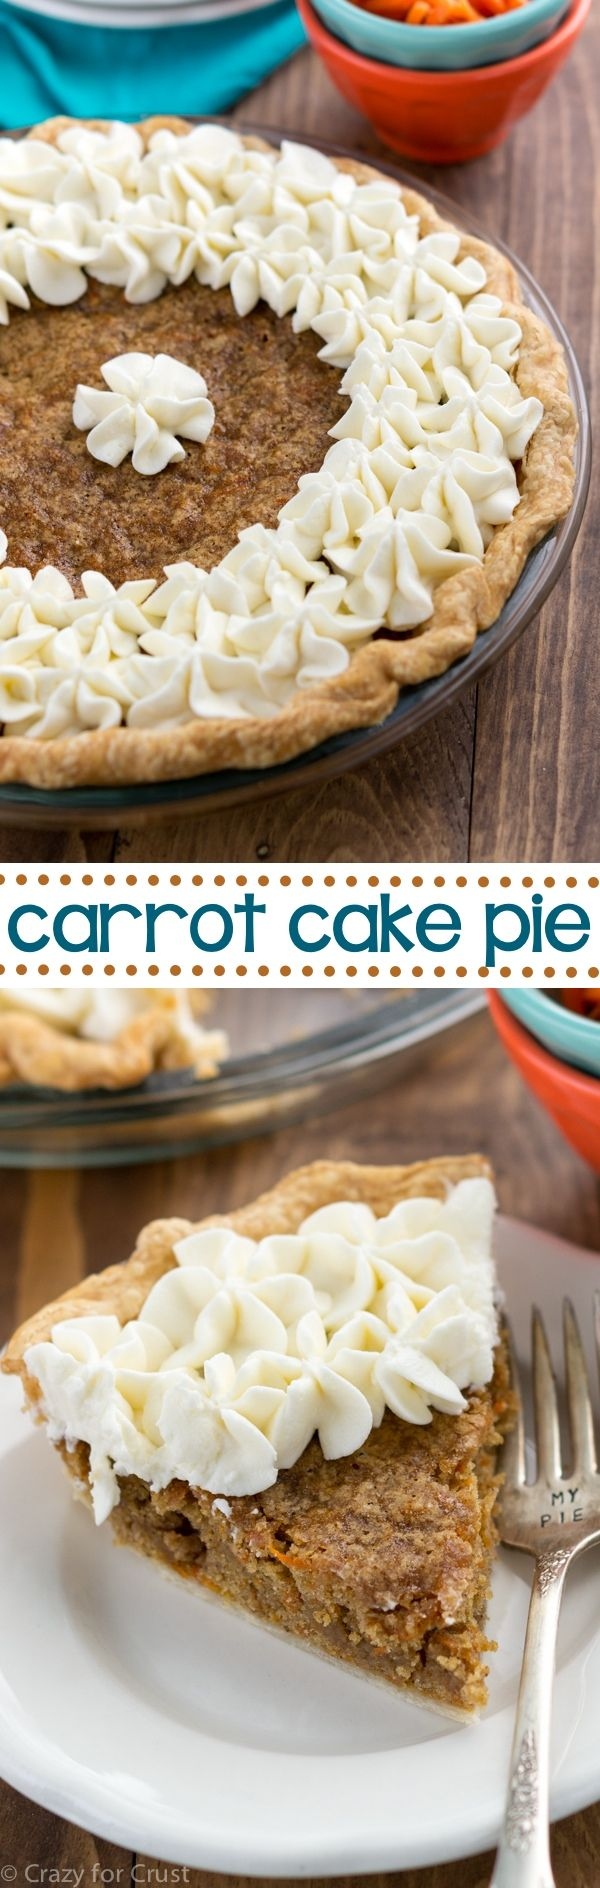 Carrot Cake Pie is an easy dessert recipe that's perfect for carrot cake lovers! It's a carrot cake blondie in a pie crust that's topped with cream cheese whipped cream!